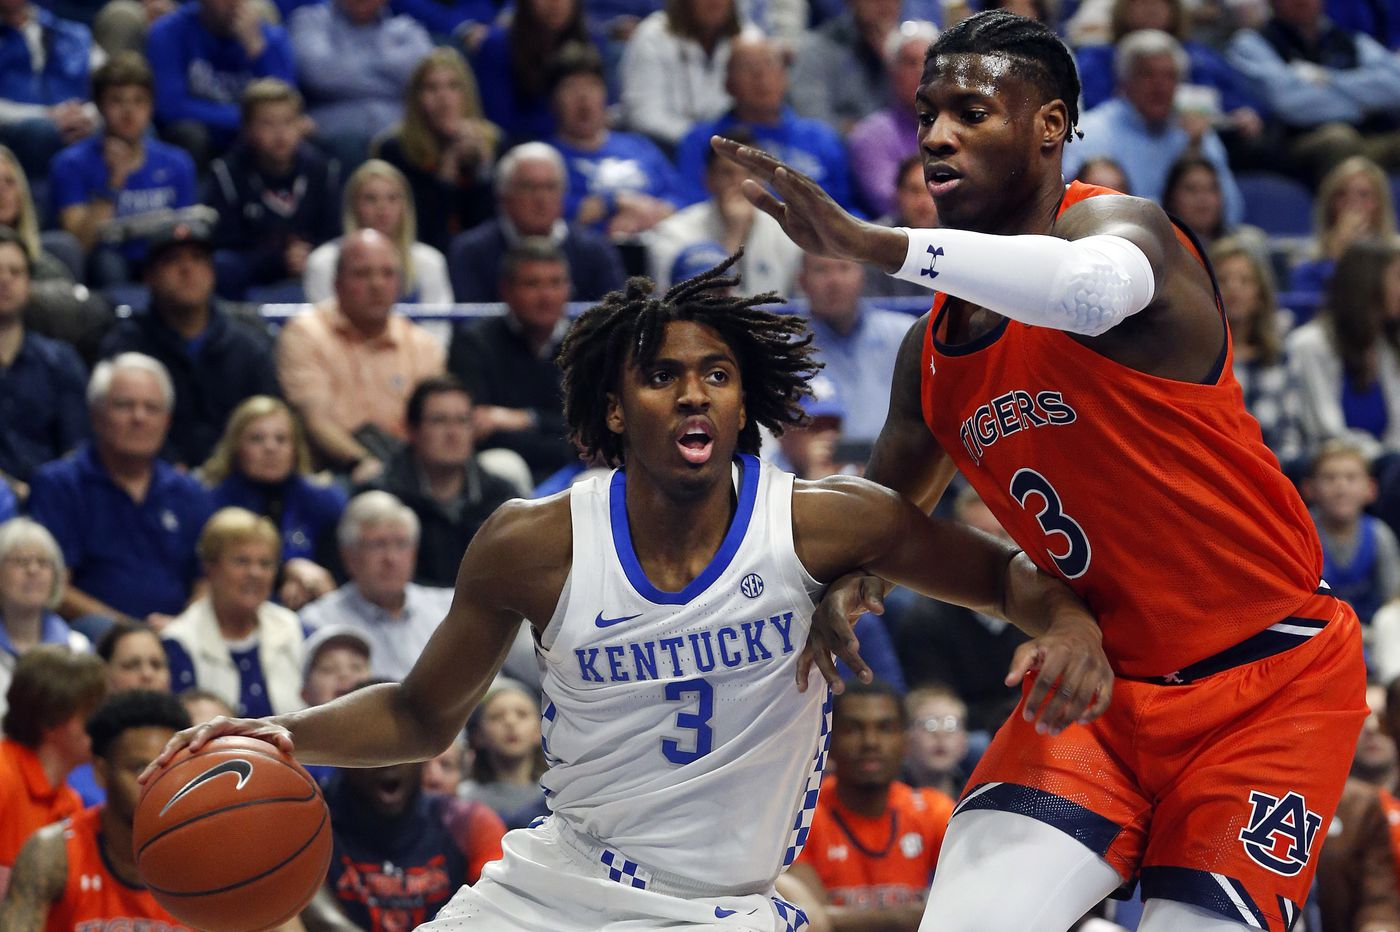 Sixers select Tyrese Maxey with 21st overall pick, trade Al Horford and Josh Richardson for sharpshooters